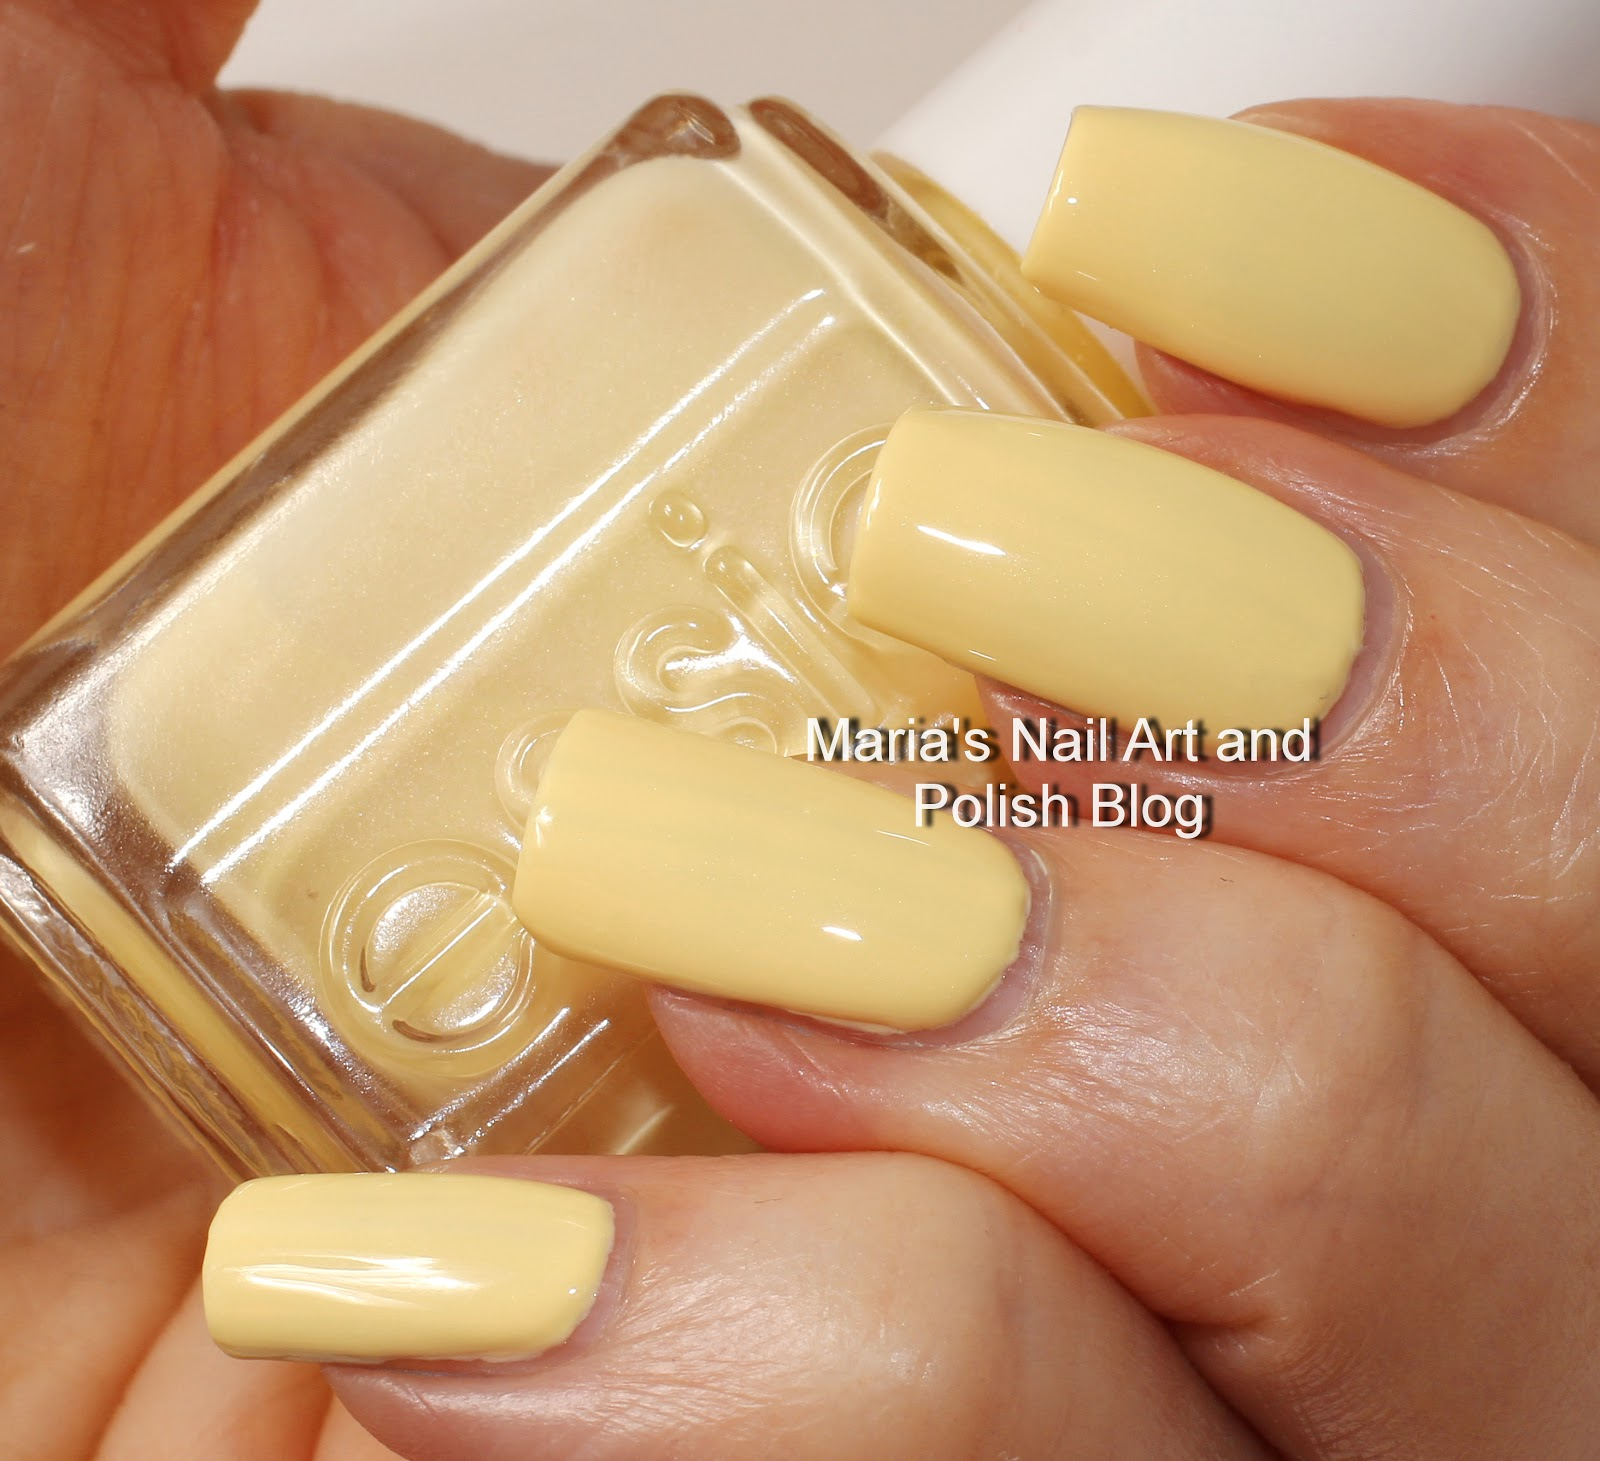 Marias Nail Art and Polish Blog: Essie Barbuda Banana swatches - vintage